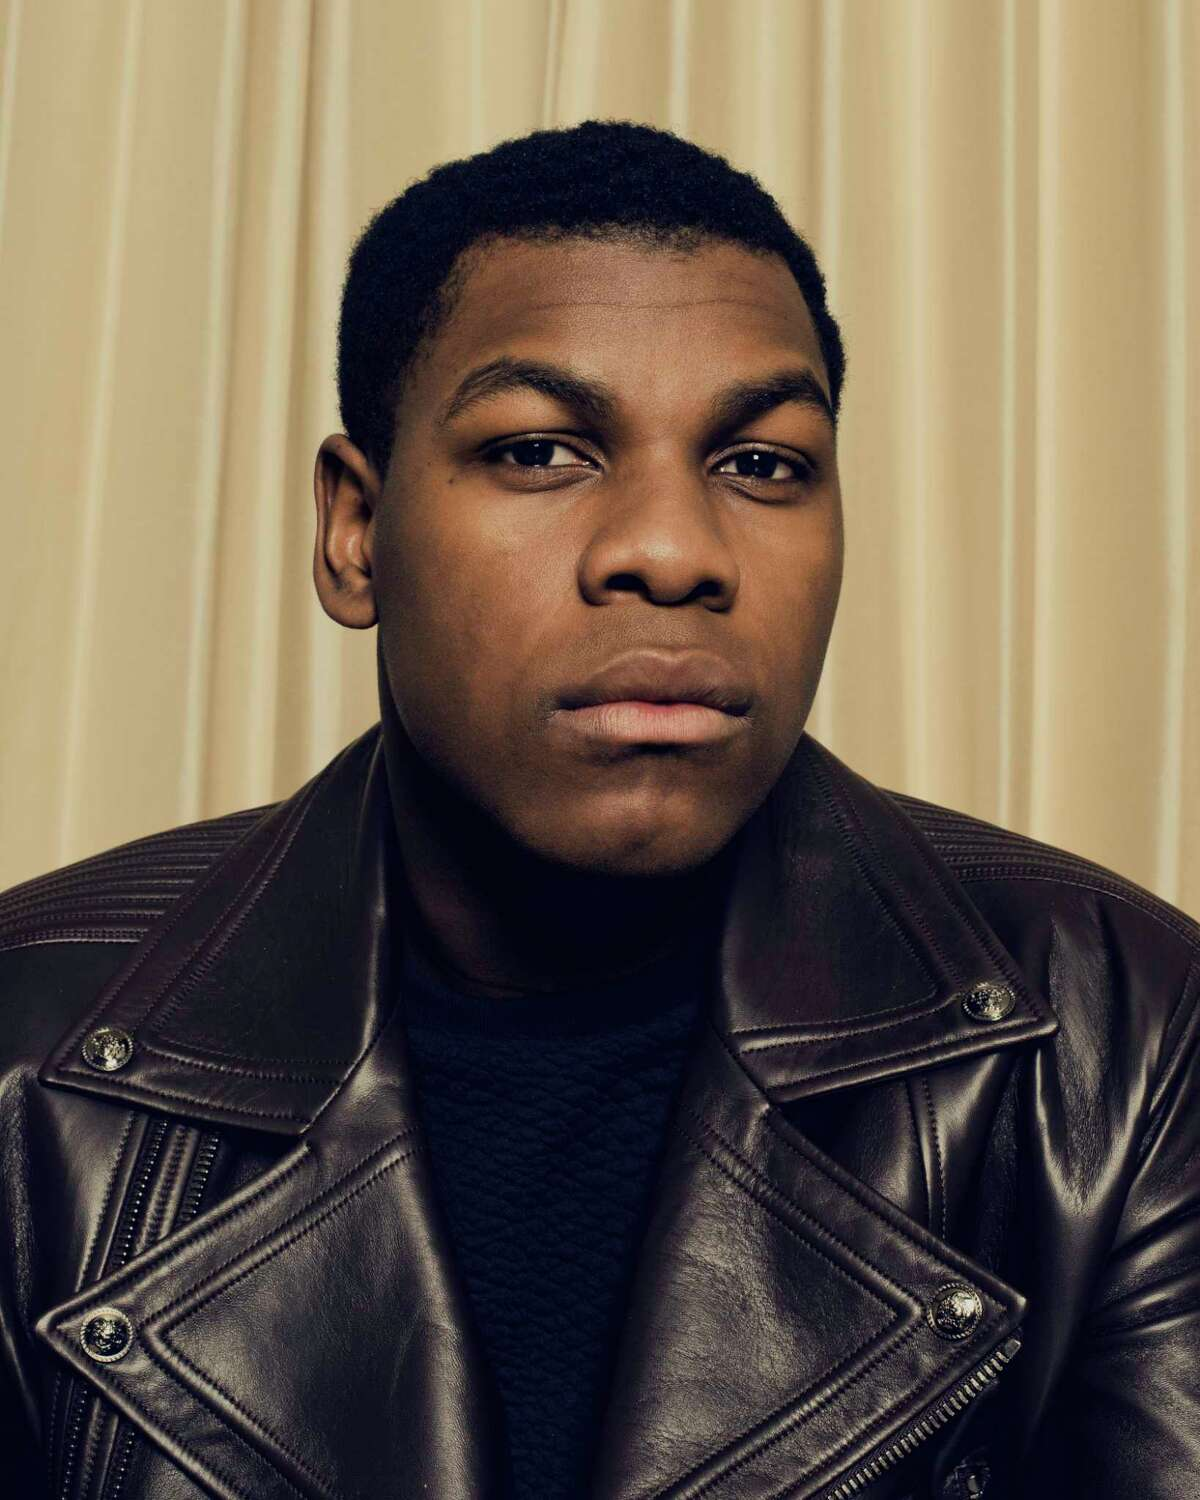 -- PHOTO MOVED IN ADVANCE AND NOT FOR USE - ONLINE OR IN PRINT - BEFORE DEC. 20, 2015. -- John Boyega, 23, who plays a disaffected stormtrooper named Finn in the upcoming a€œStar Wars: The Force Awakensa€ film, in New York, Dec. 2, 2015. Boyega and his fellow British co-star, Daisy Ridley, both with little previous screen exposure, are bracing themselves for the biggest roles of their careers. (Ryan Pfluger/The New York Times) ORG XMIT: XNYT75